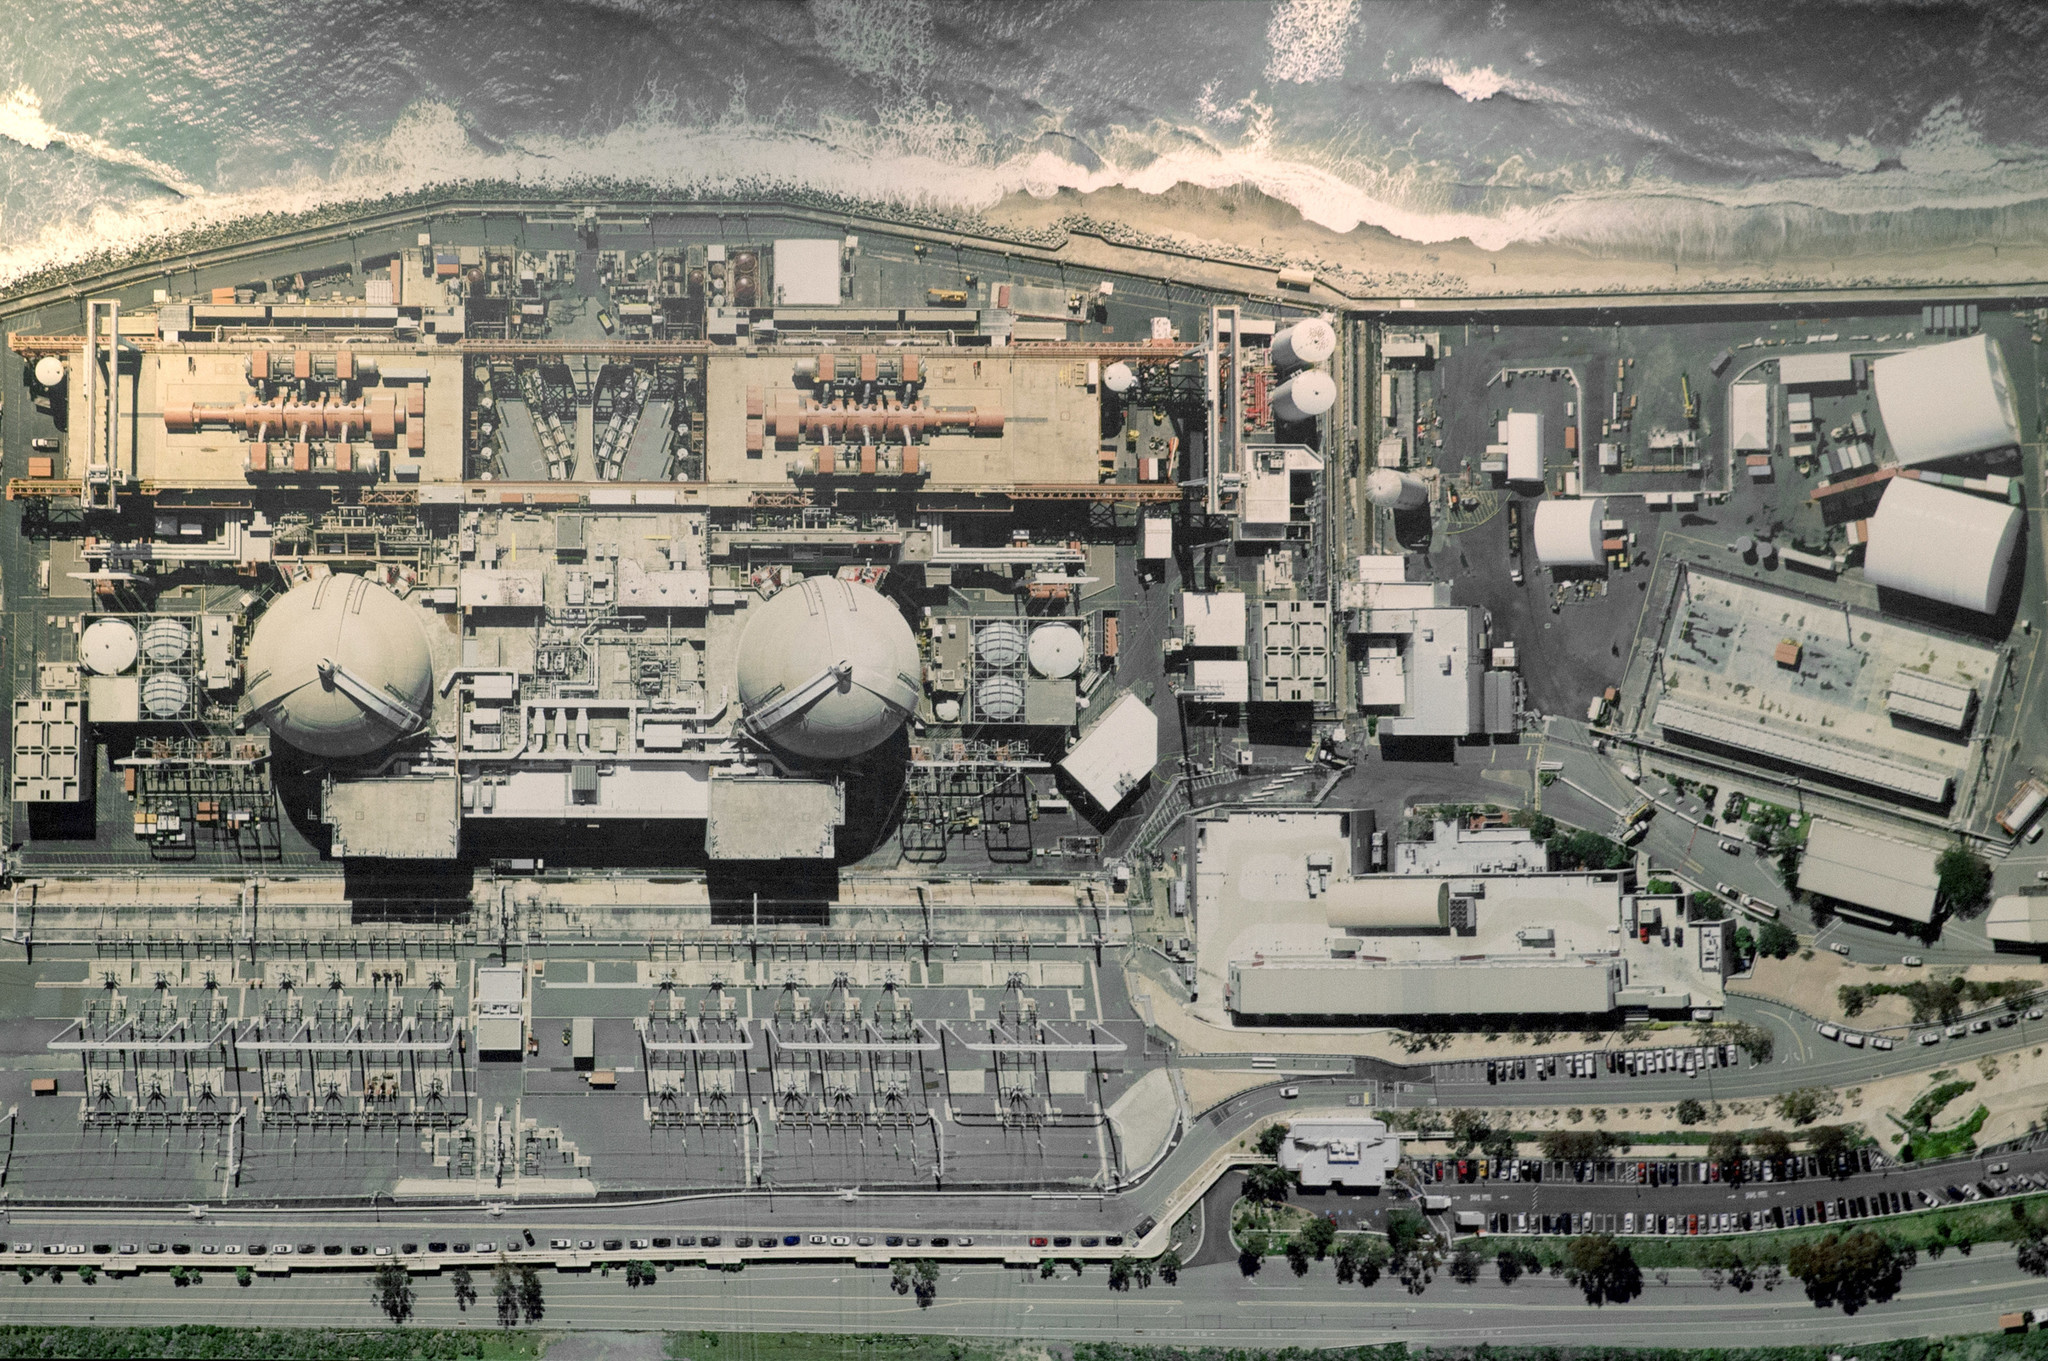 An aerial view of the closed San Onofre Nuclear Generating Station hangs on the wall of a conference room at the facility.